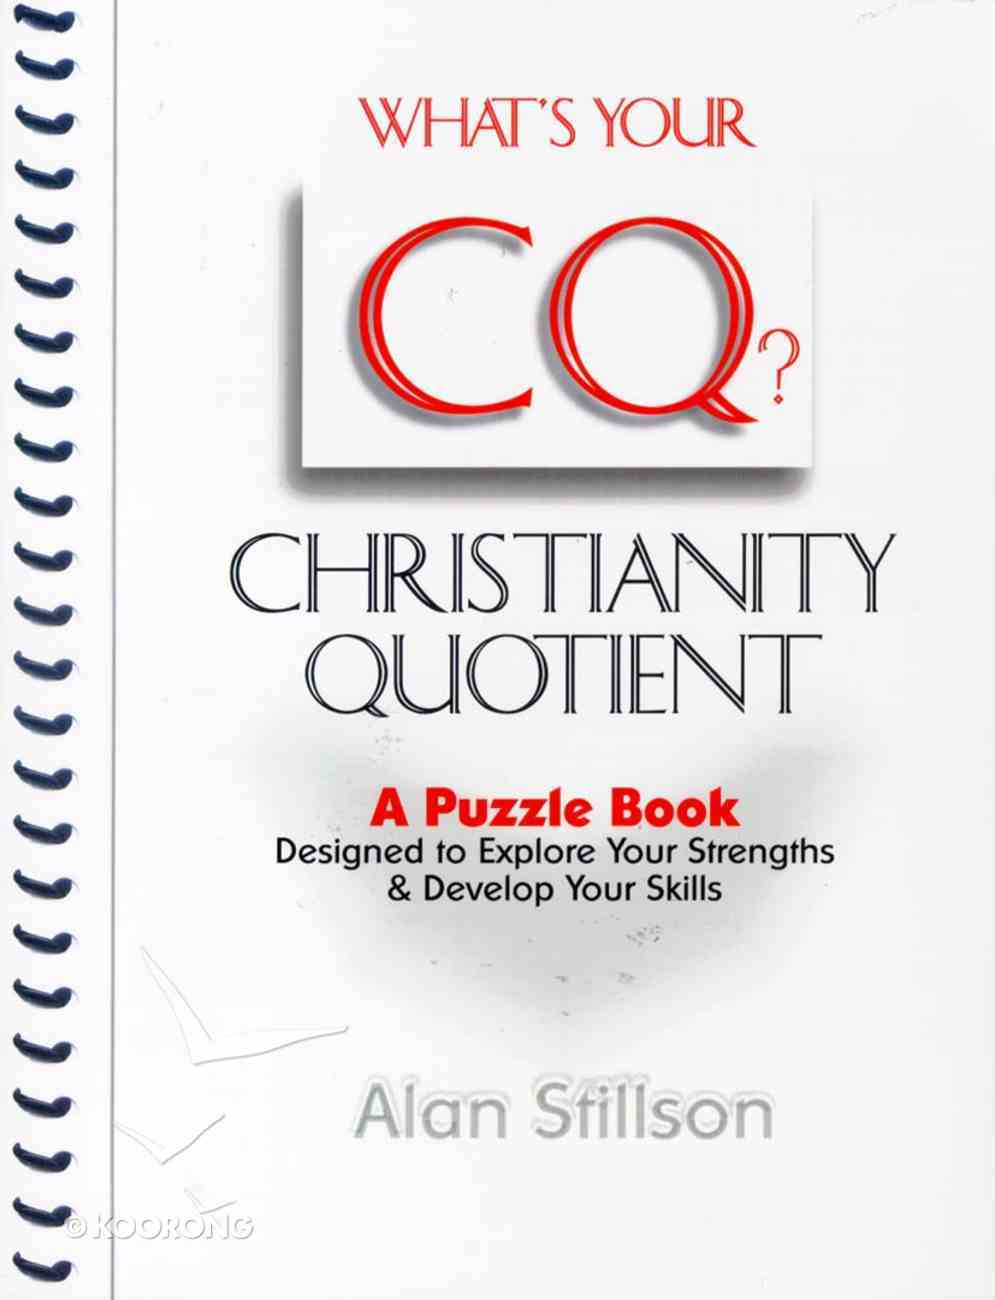 What's Your Cq? (Christianity Quotient) Paperback